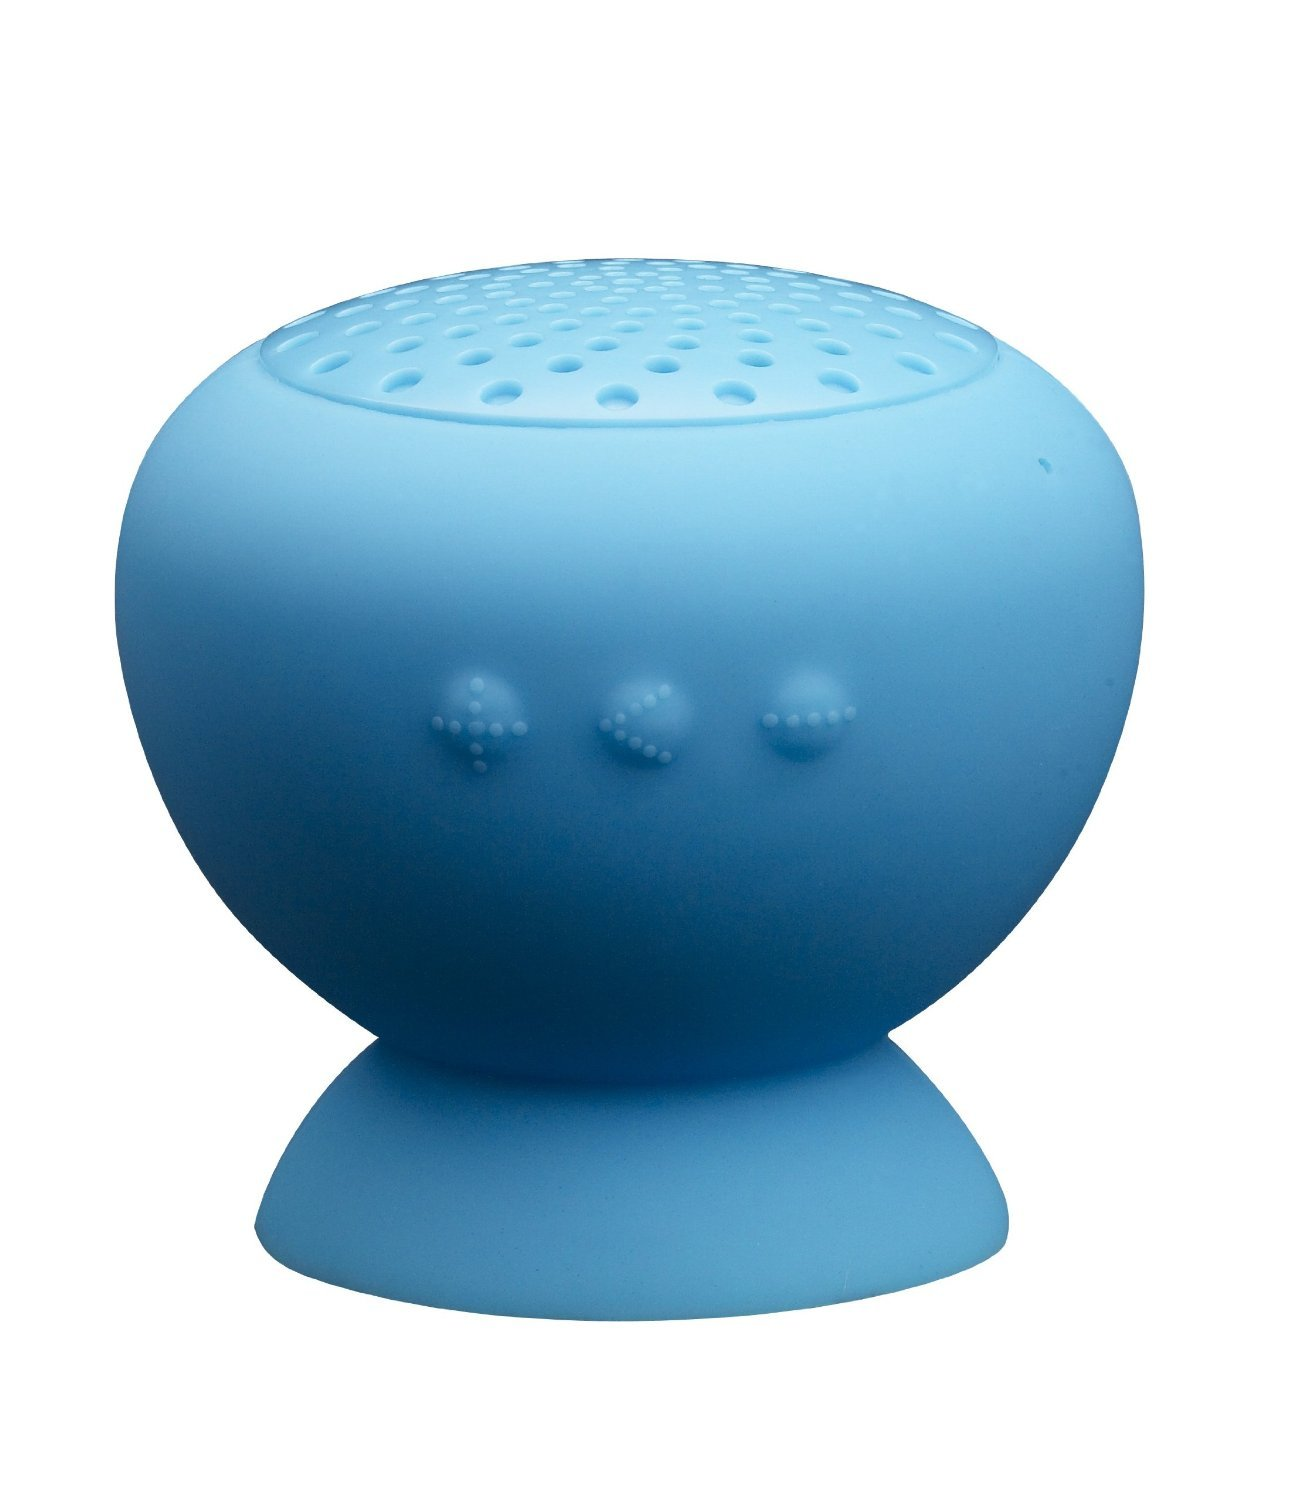 Sunbeauty® Waterproof Mini Mushroom Wireless Bluetooth Speaker (blue) wireless bluetooth speaker cute mushroom waterproof sucker mini bluetooth speaker audio outdoor portable bracket for xiaomi ipad